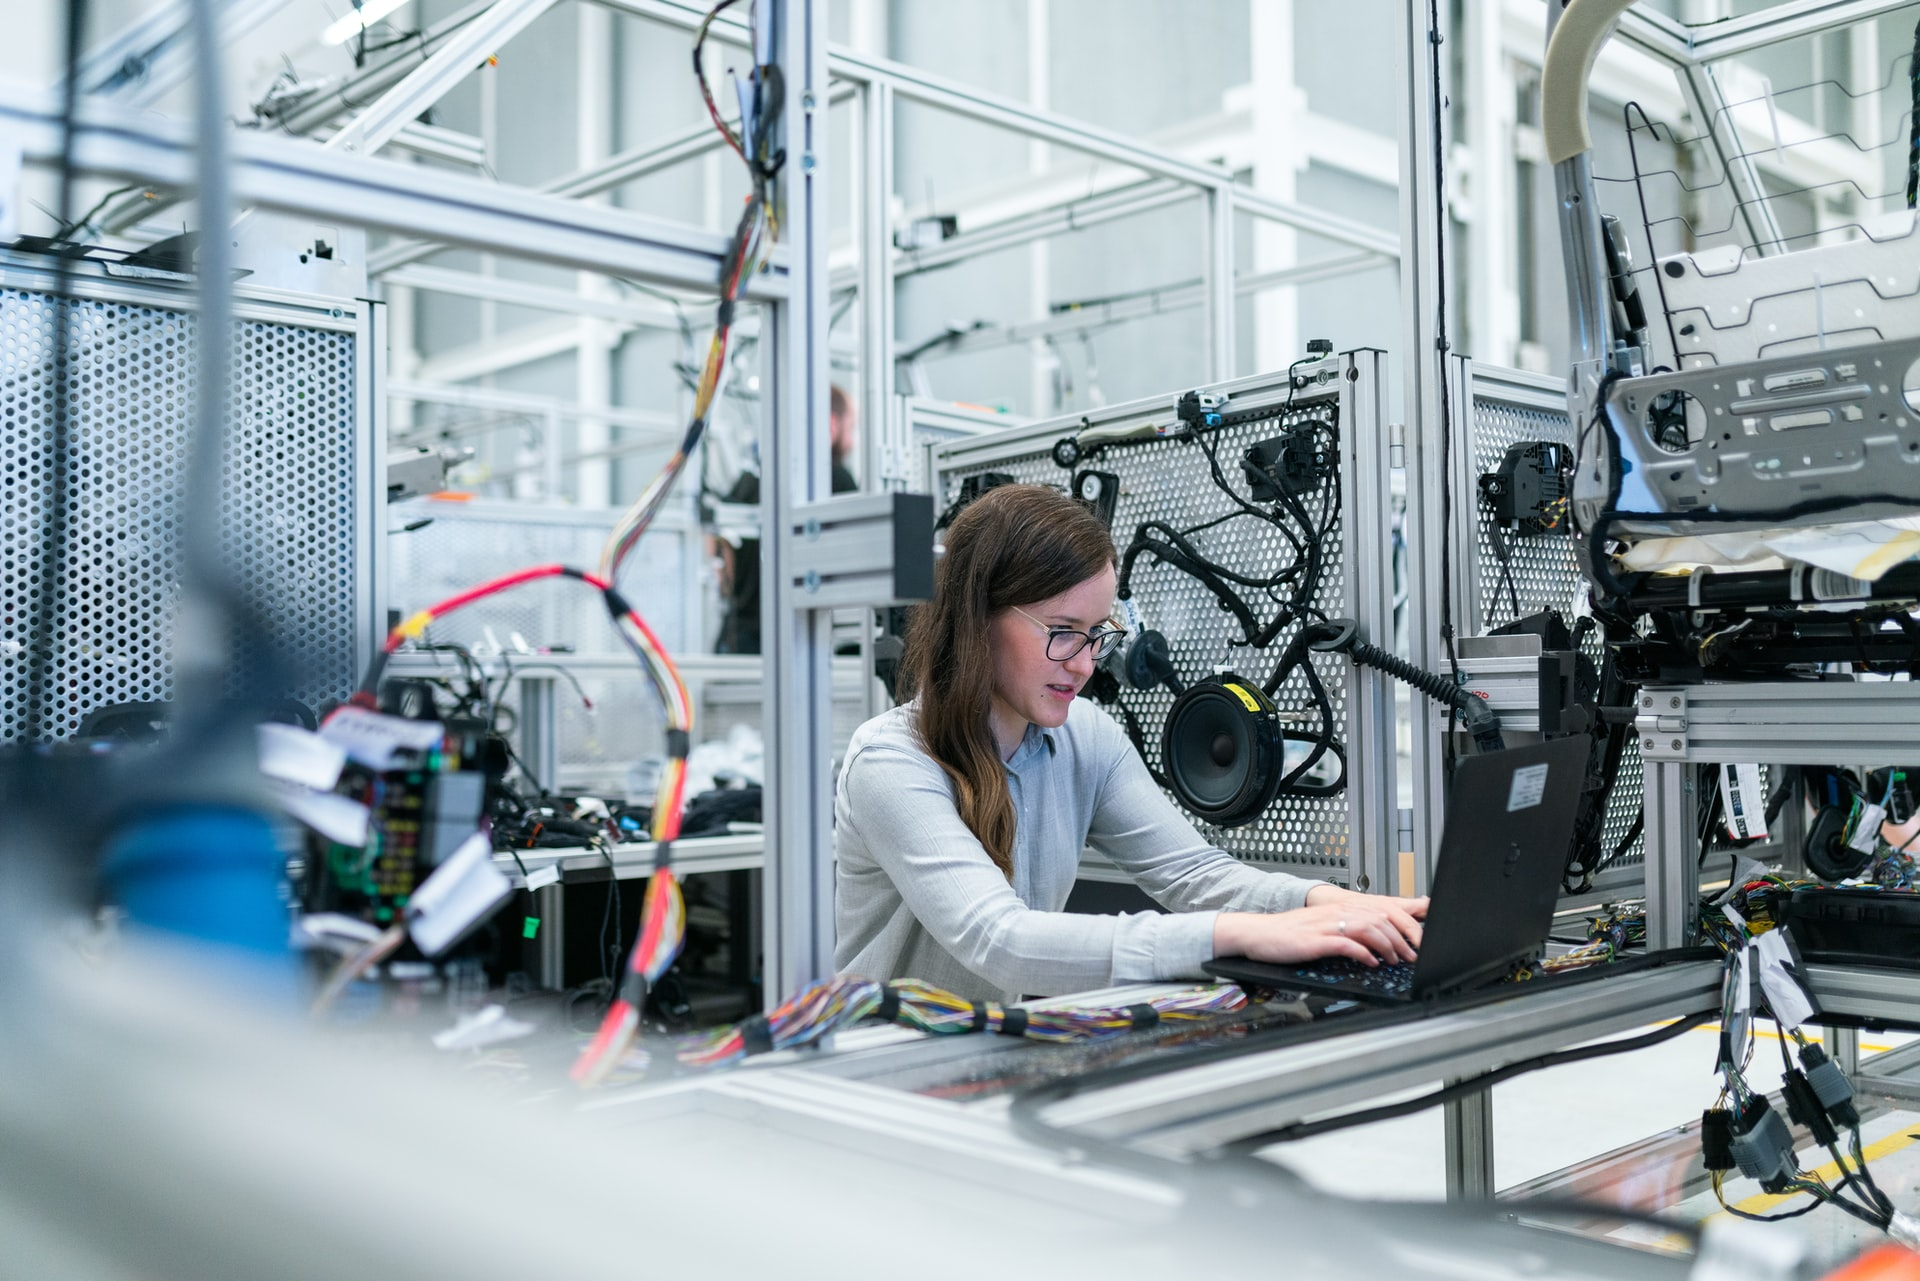 Woman on laptop quality testing in a factory for electronics and car parts. This is an important part of supply chain transparency for logistics